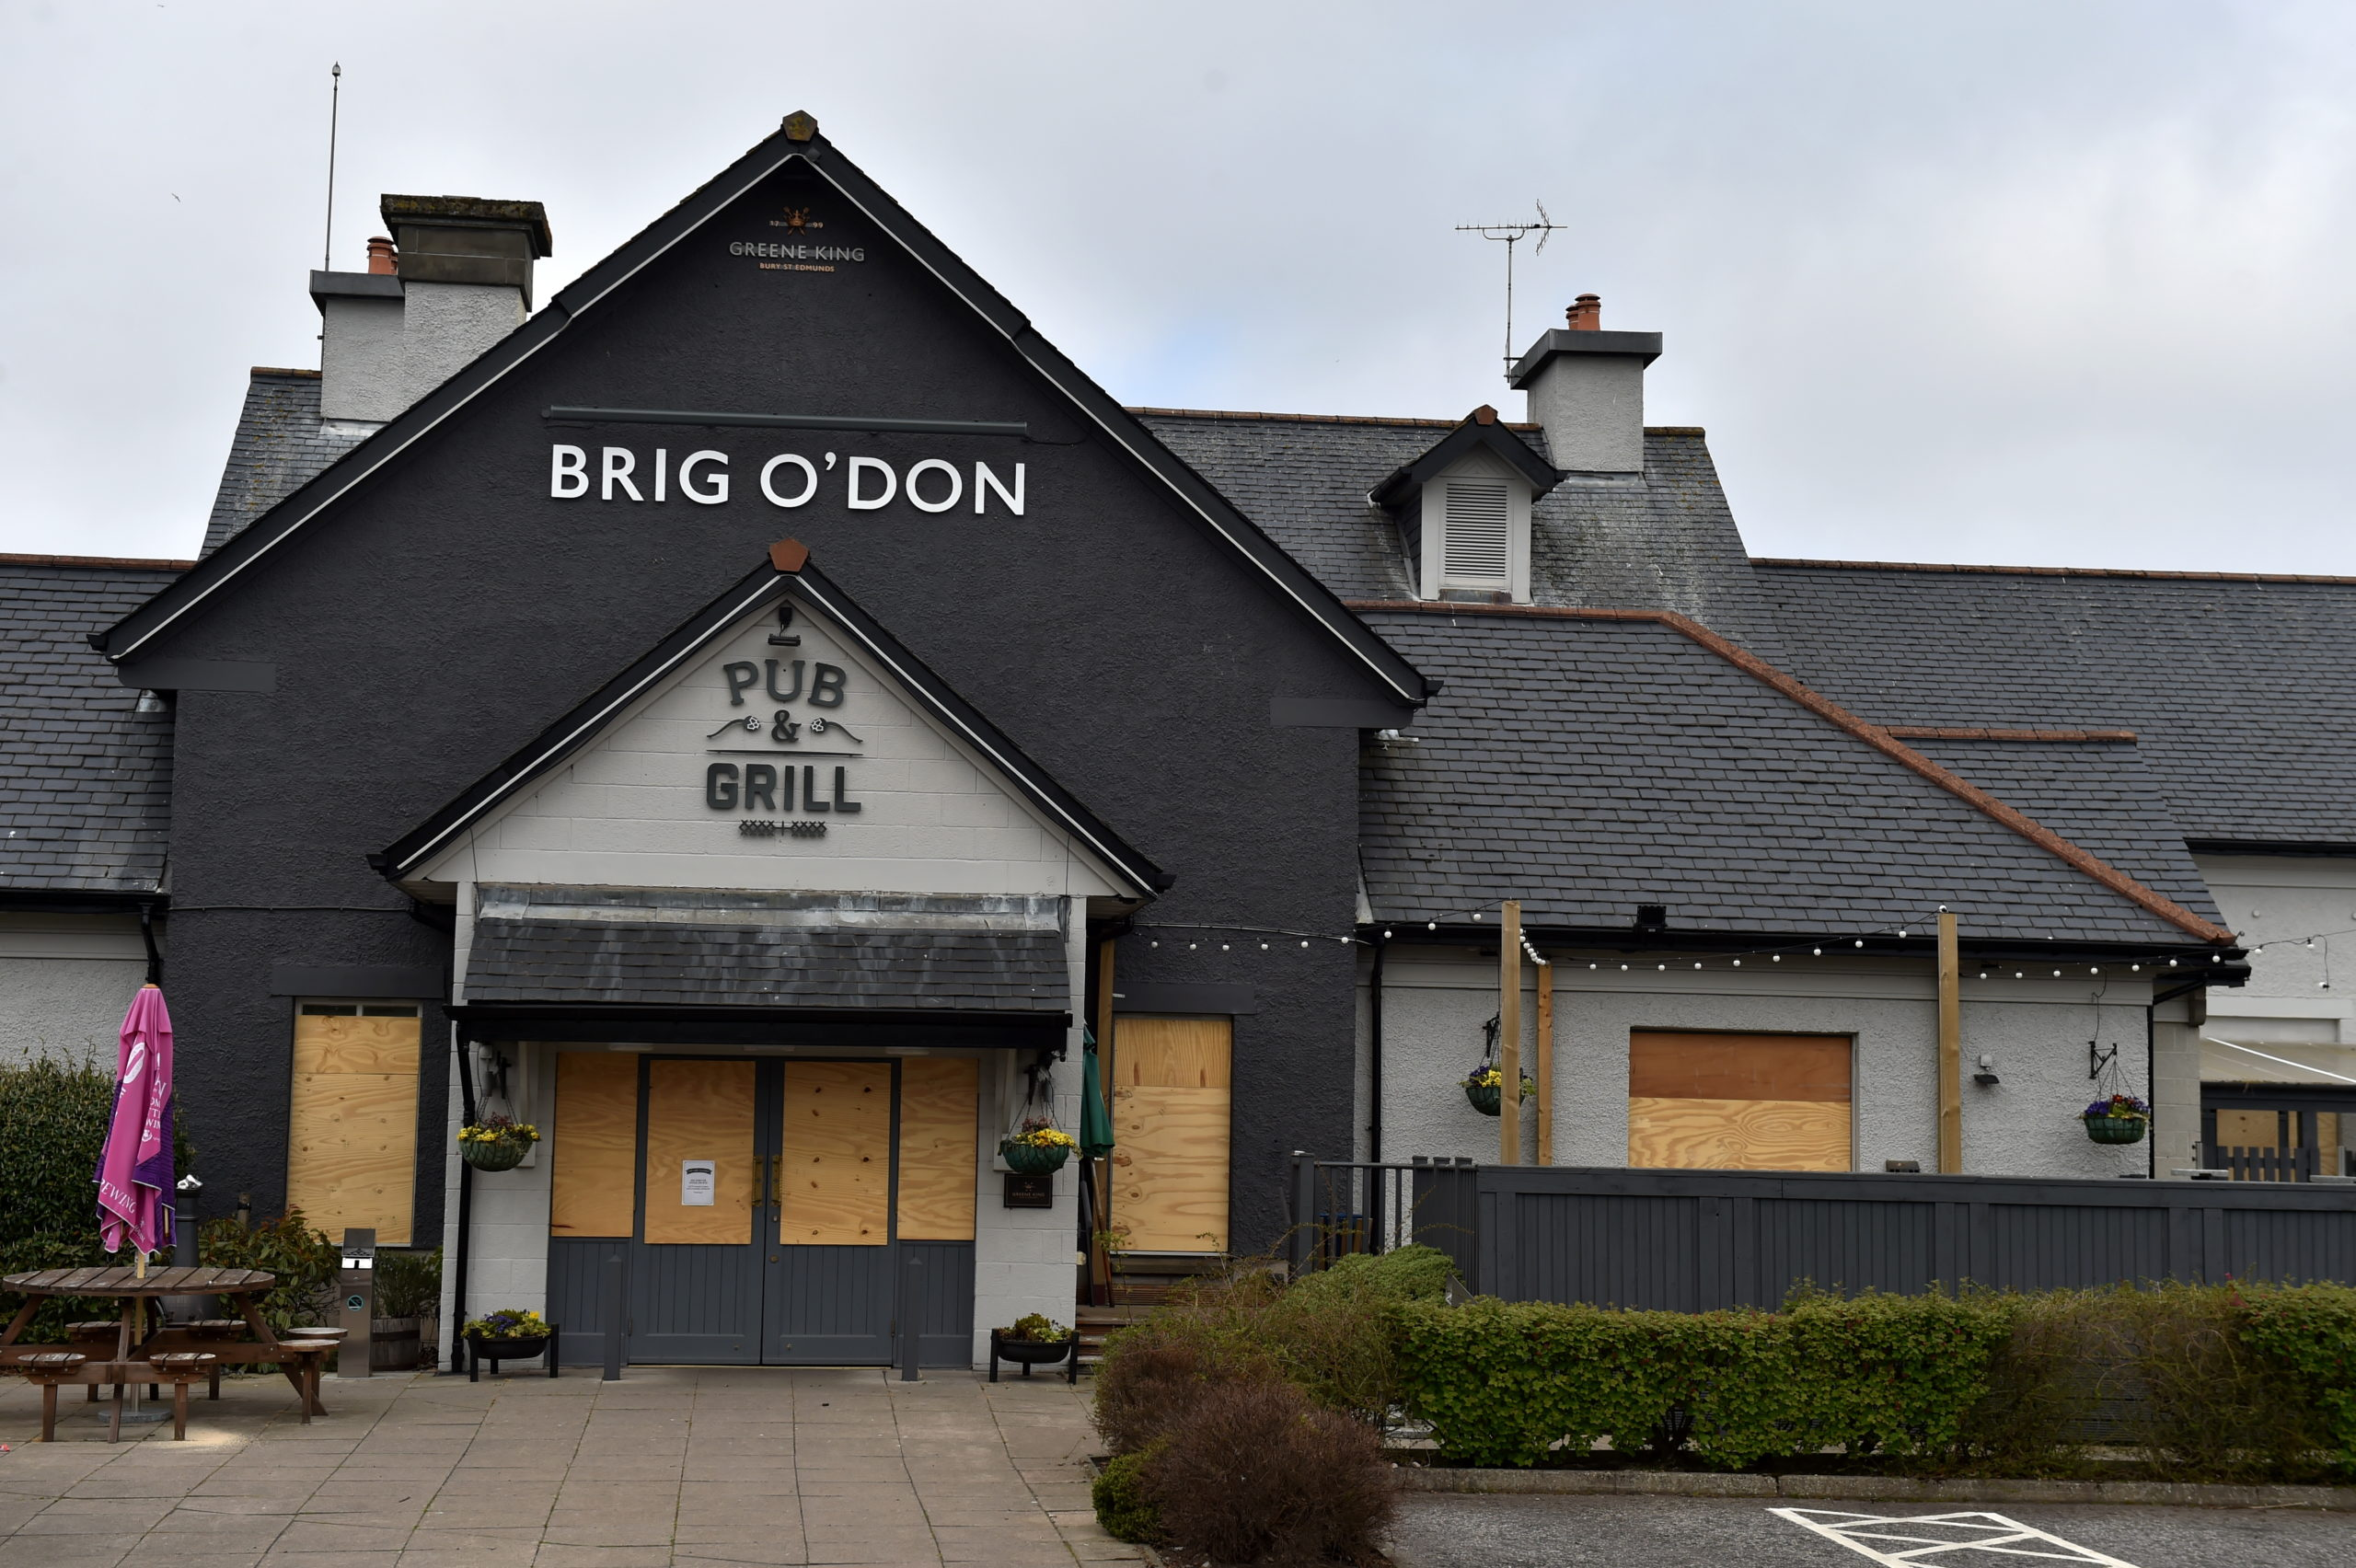 The Brig o' Don bar was broken into yesterday